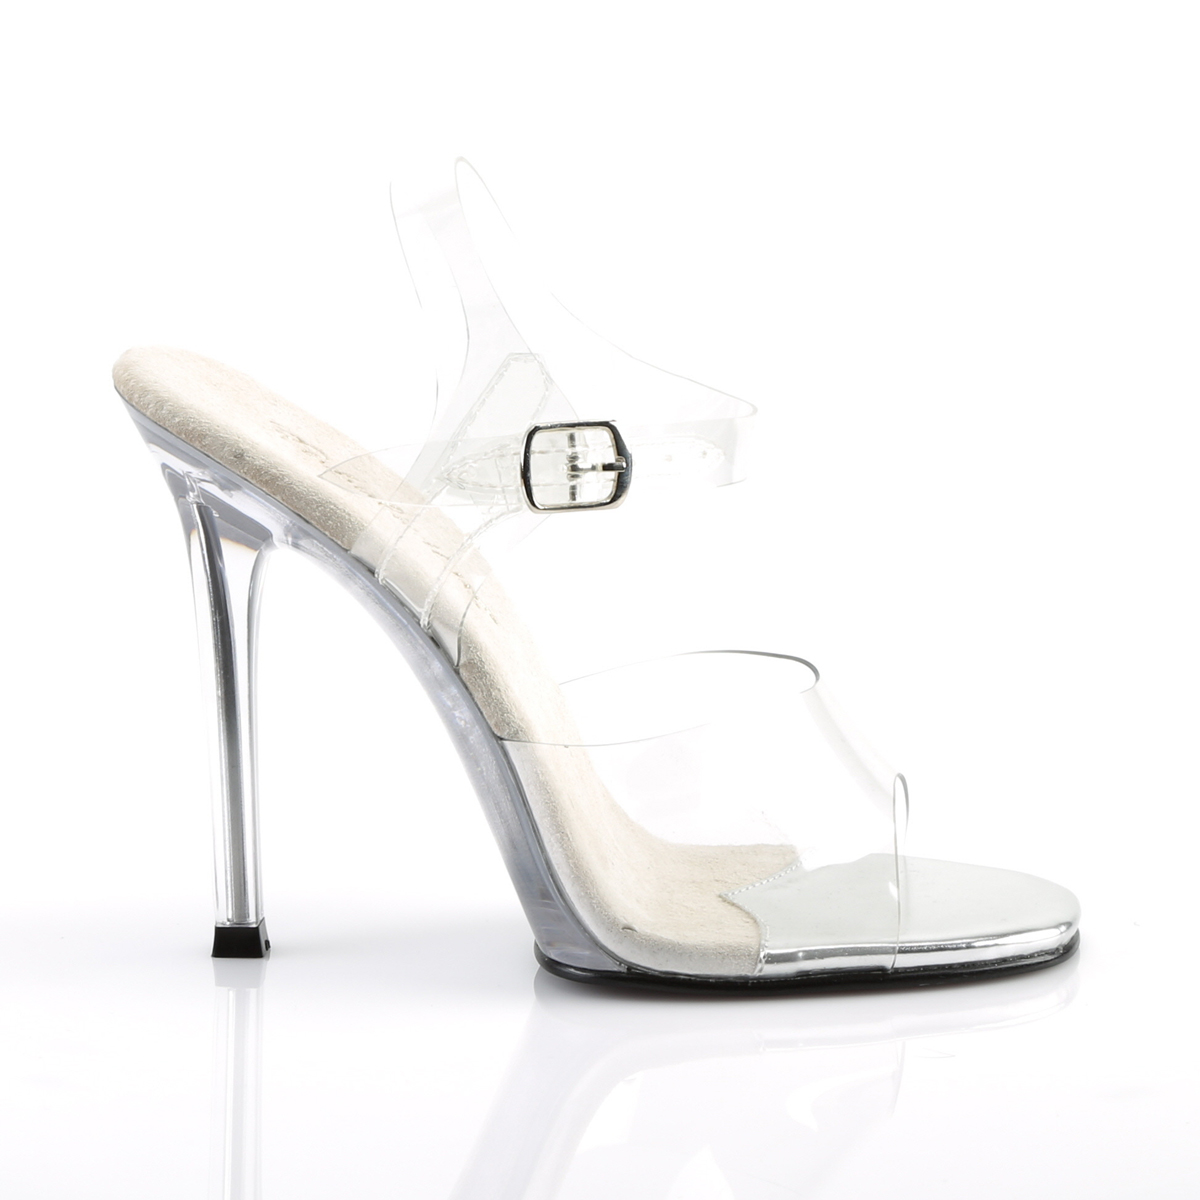 Clear Competition Heels - Gala 08